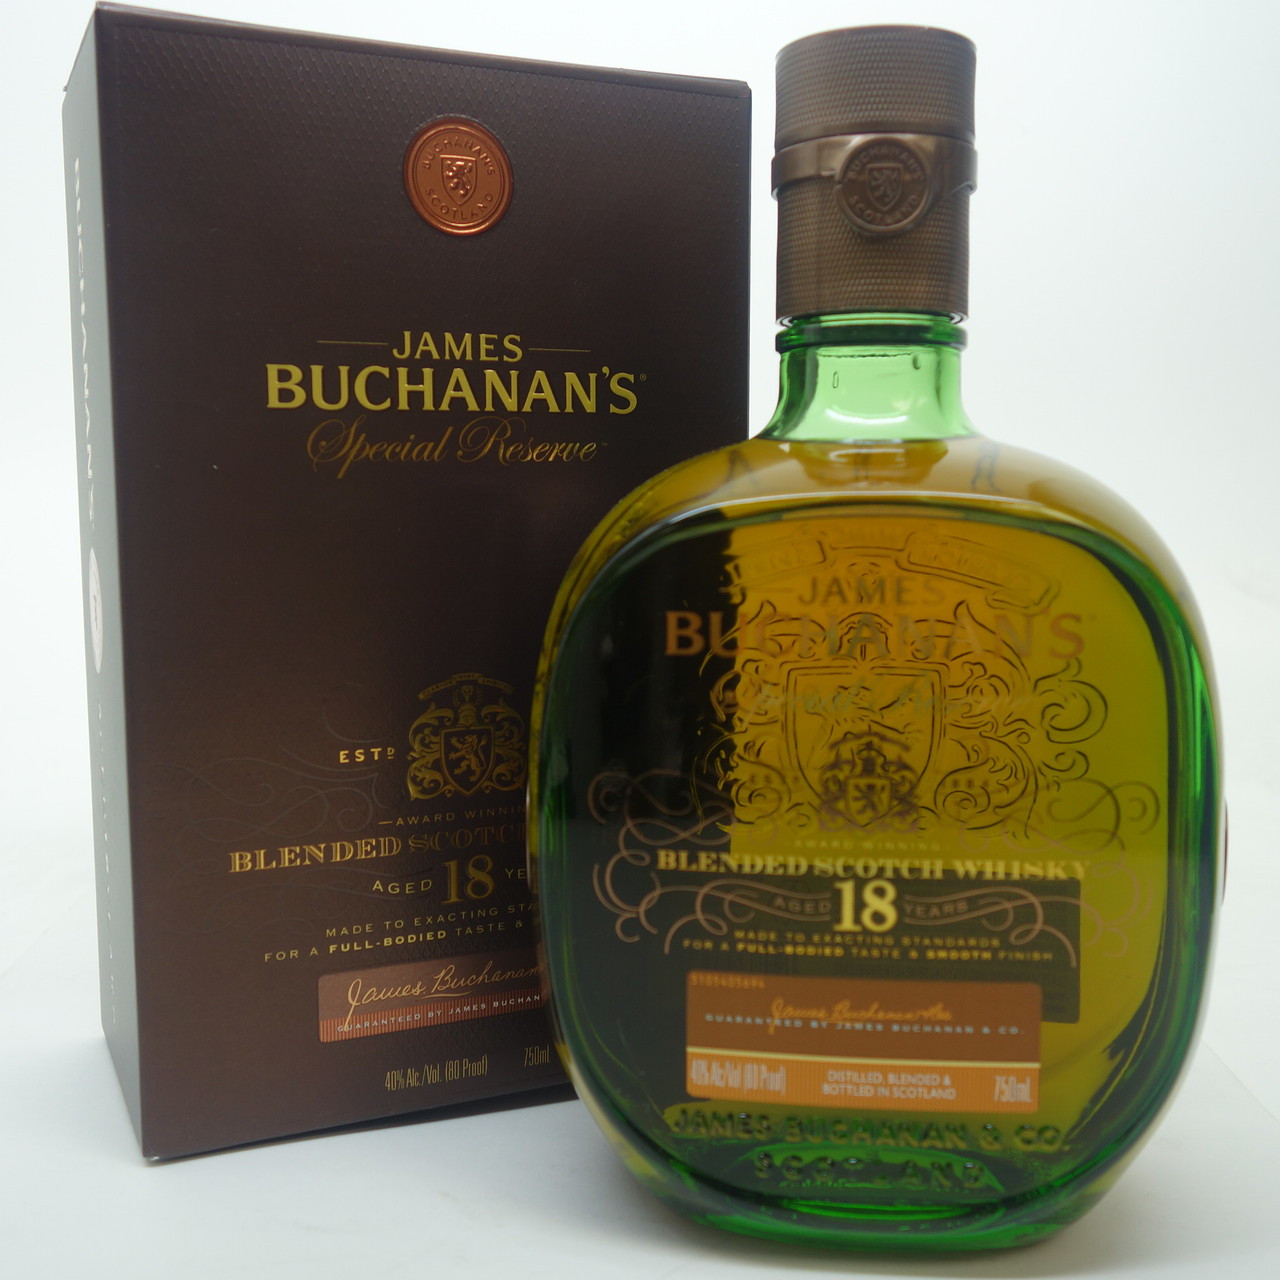 Buchanan Drink: James Buchanan's Epecial Reserve 18 Years